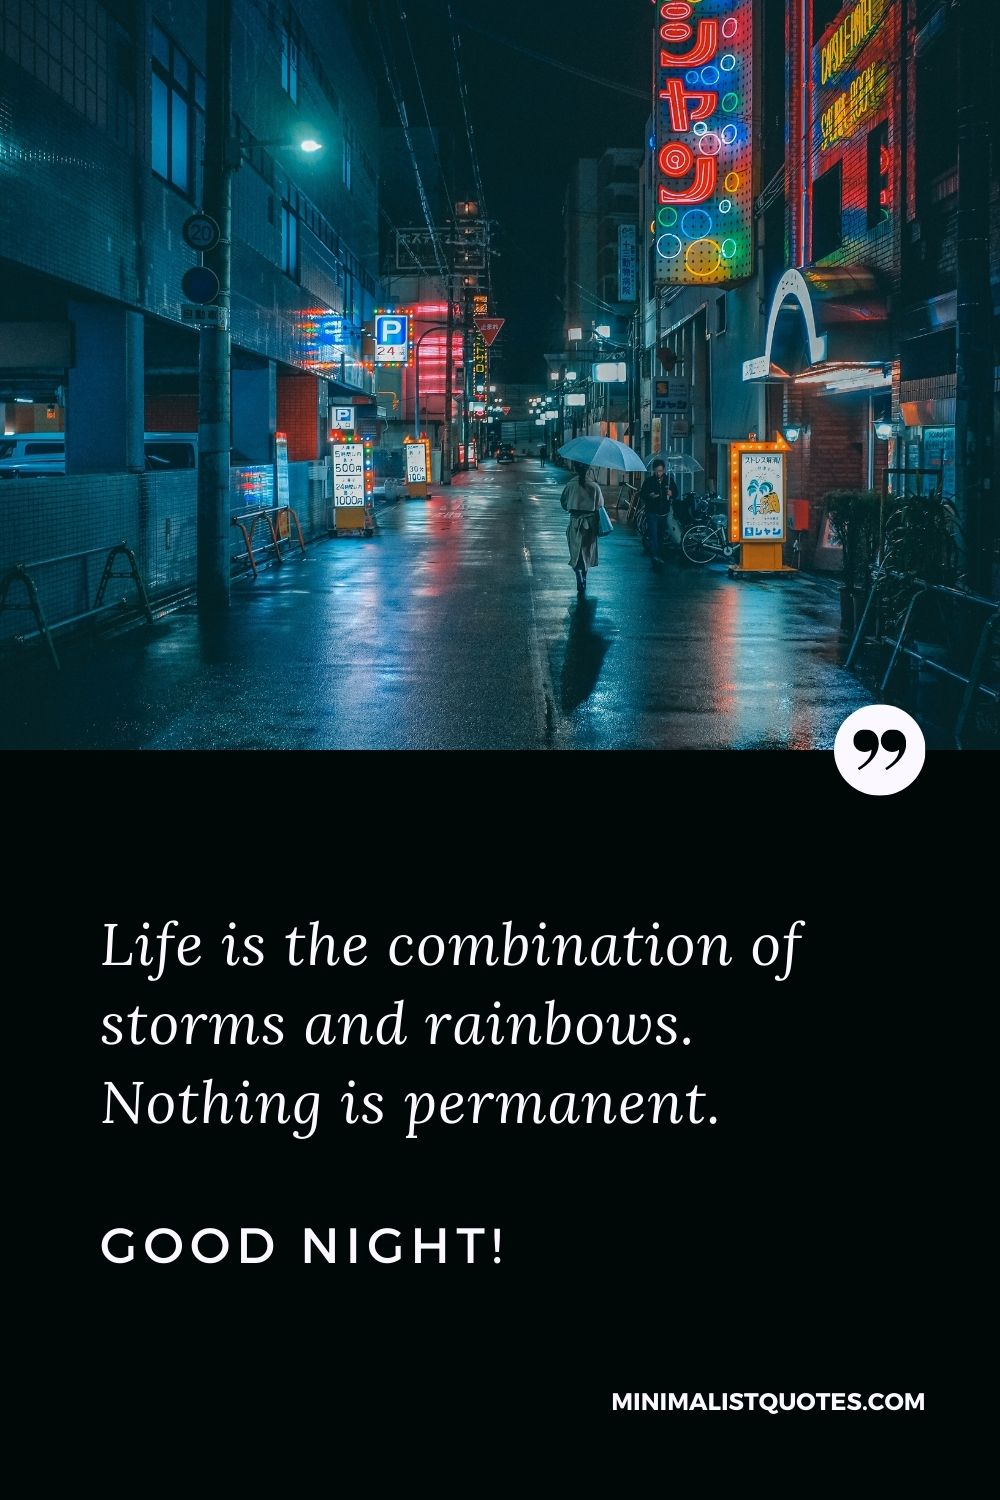 Good Night Message For A Friend: Life is the combination of storms and rainbows. Nothing is permanent. Good Night!